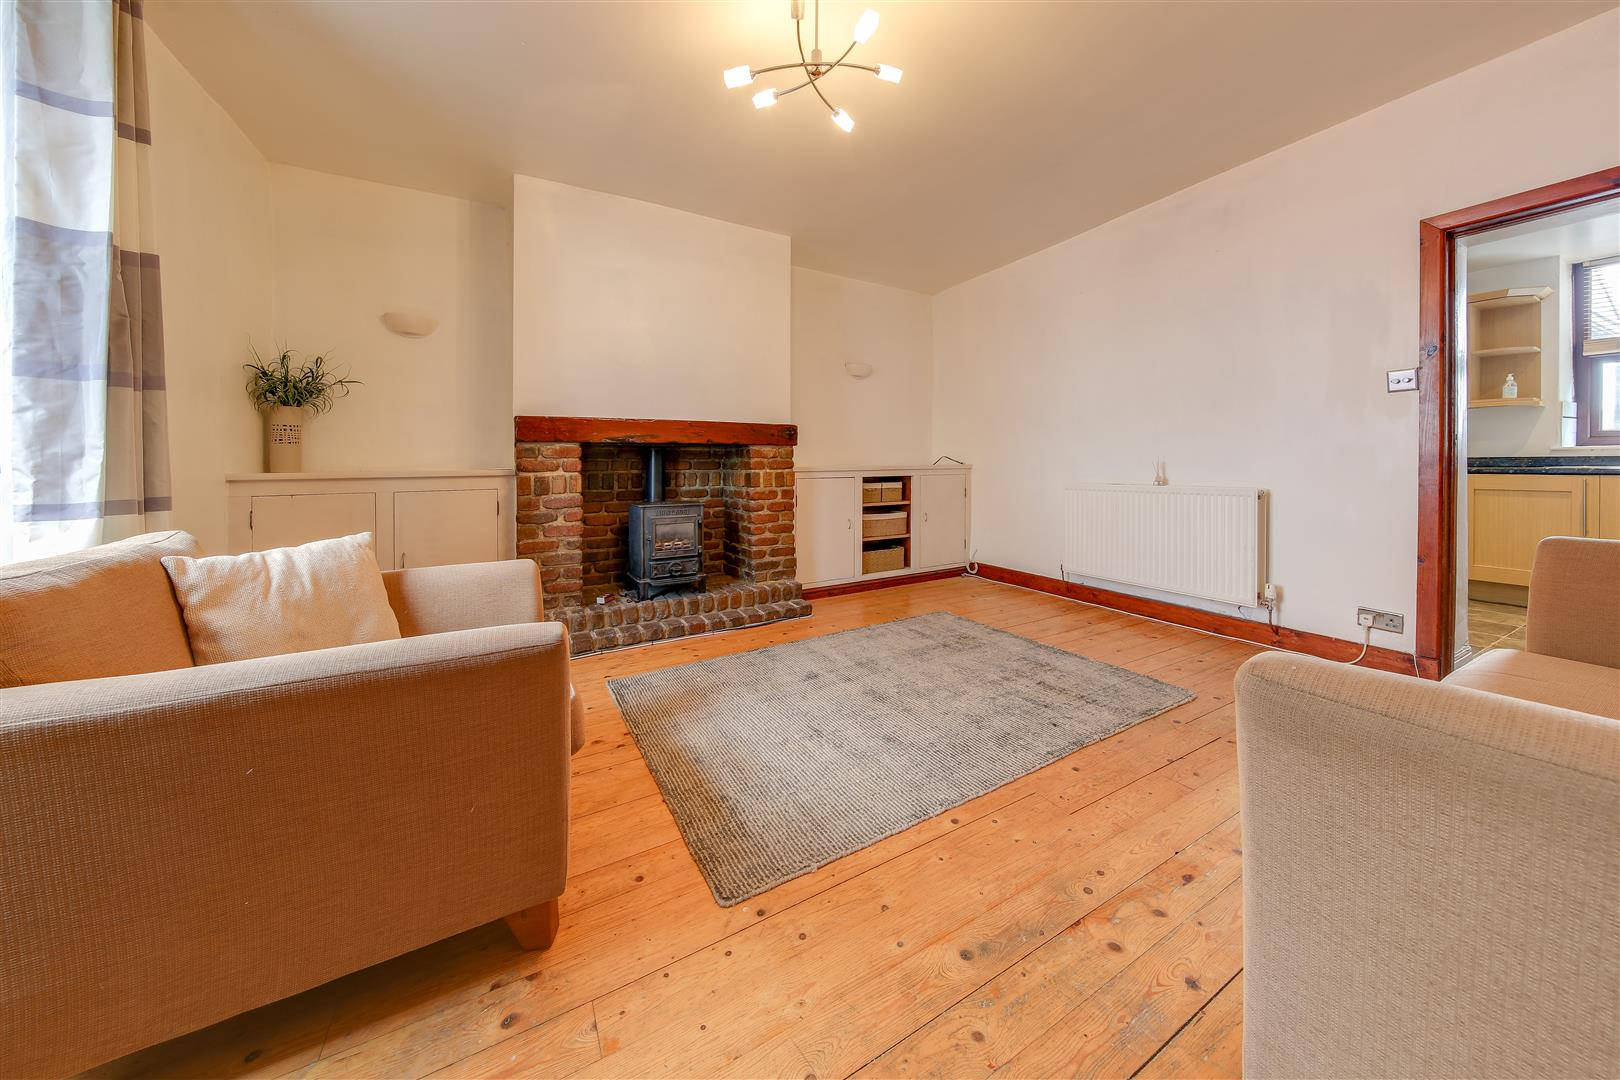 2 Bedrooms Terraced House for sale in Commercial Street, Loveclough, Rossendale